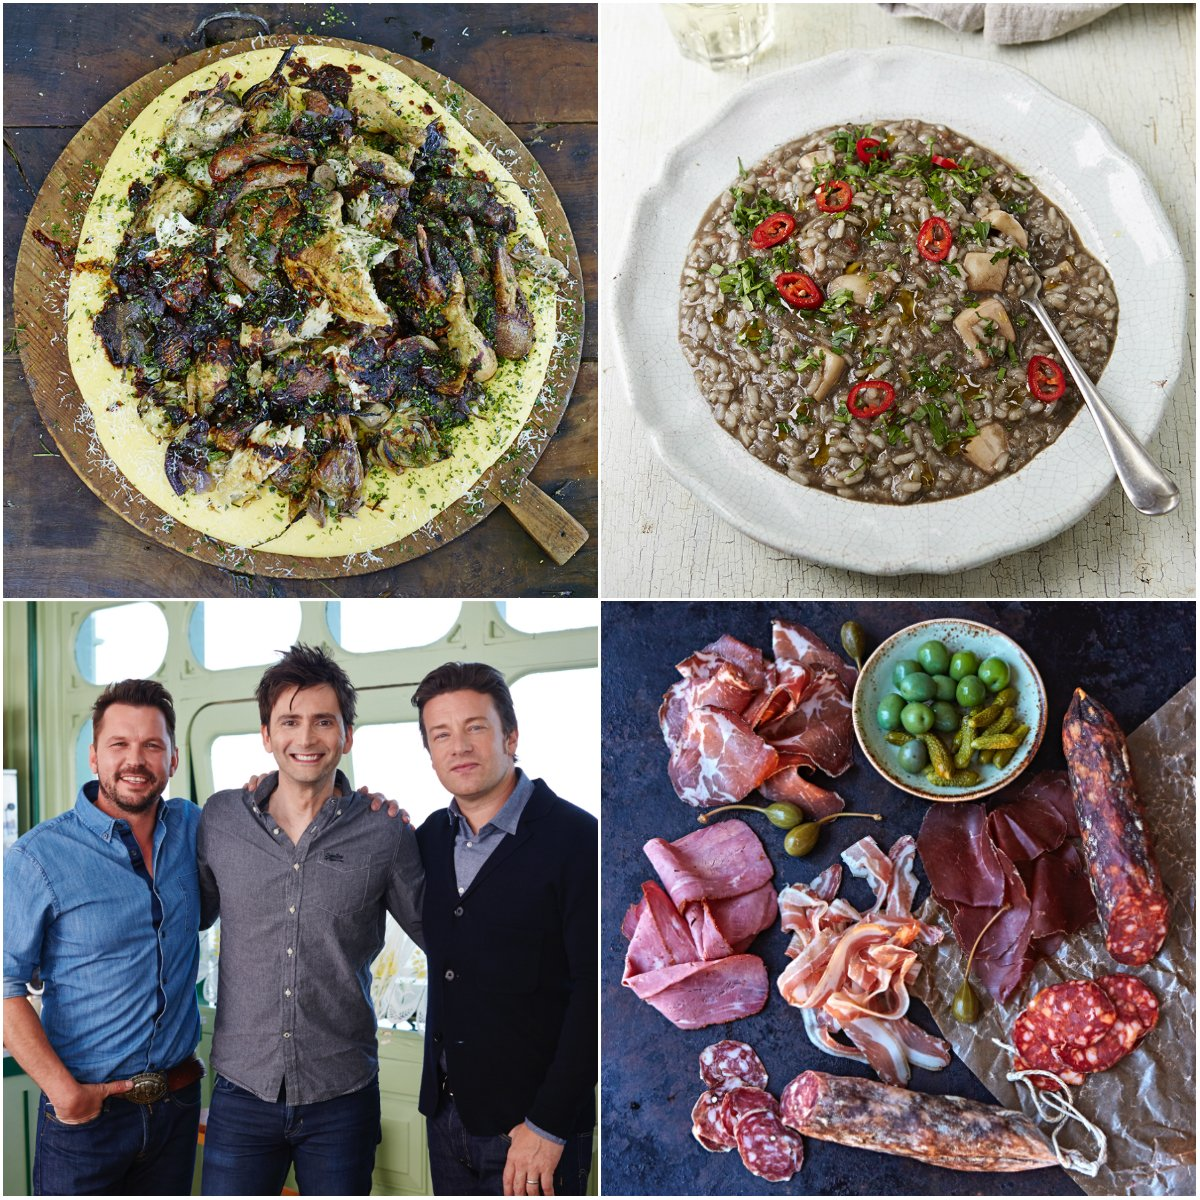 now that twitter is back! all the recipes from tonights #FridayNightFeast over on https://t.co/TD6Lhkf8Zf JO xxx https://t.co/laoAlM3mnC